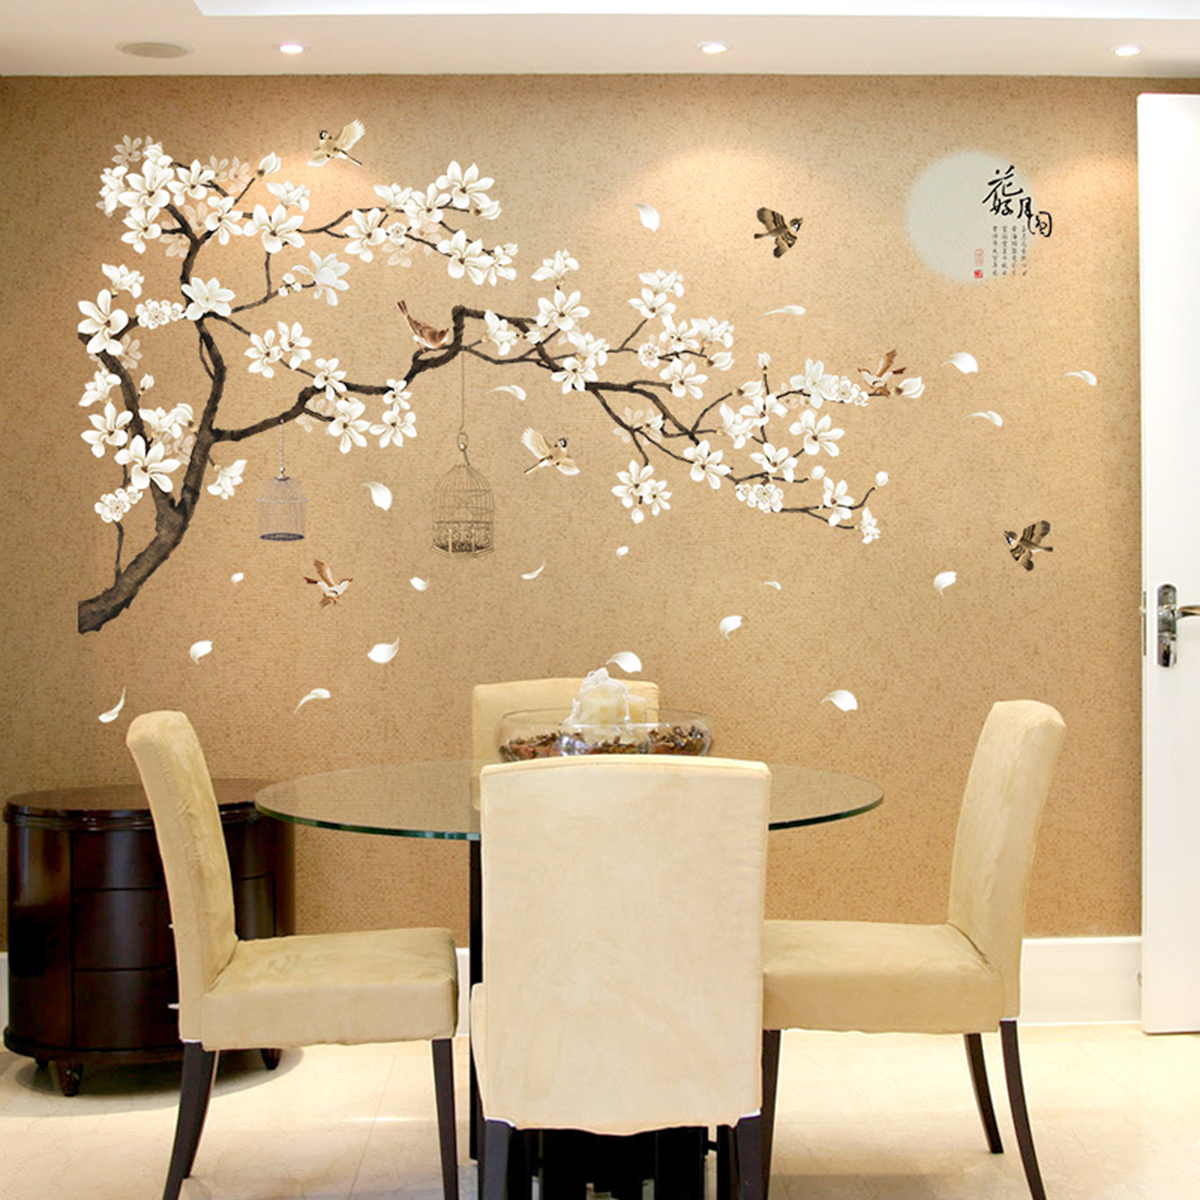 White Blossom Tree Branch Wall Art Stickers Cherry Blossom Decals